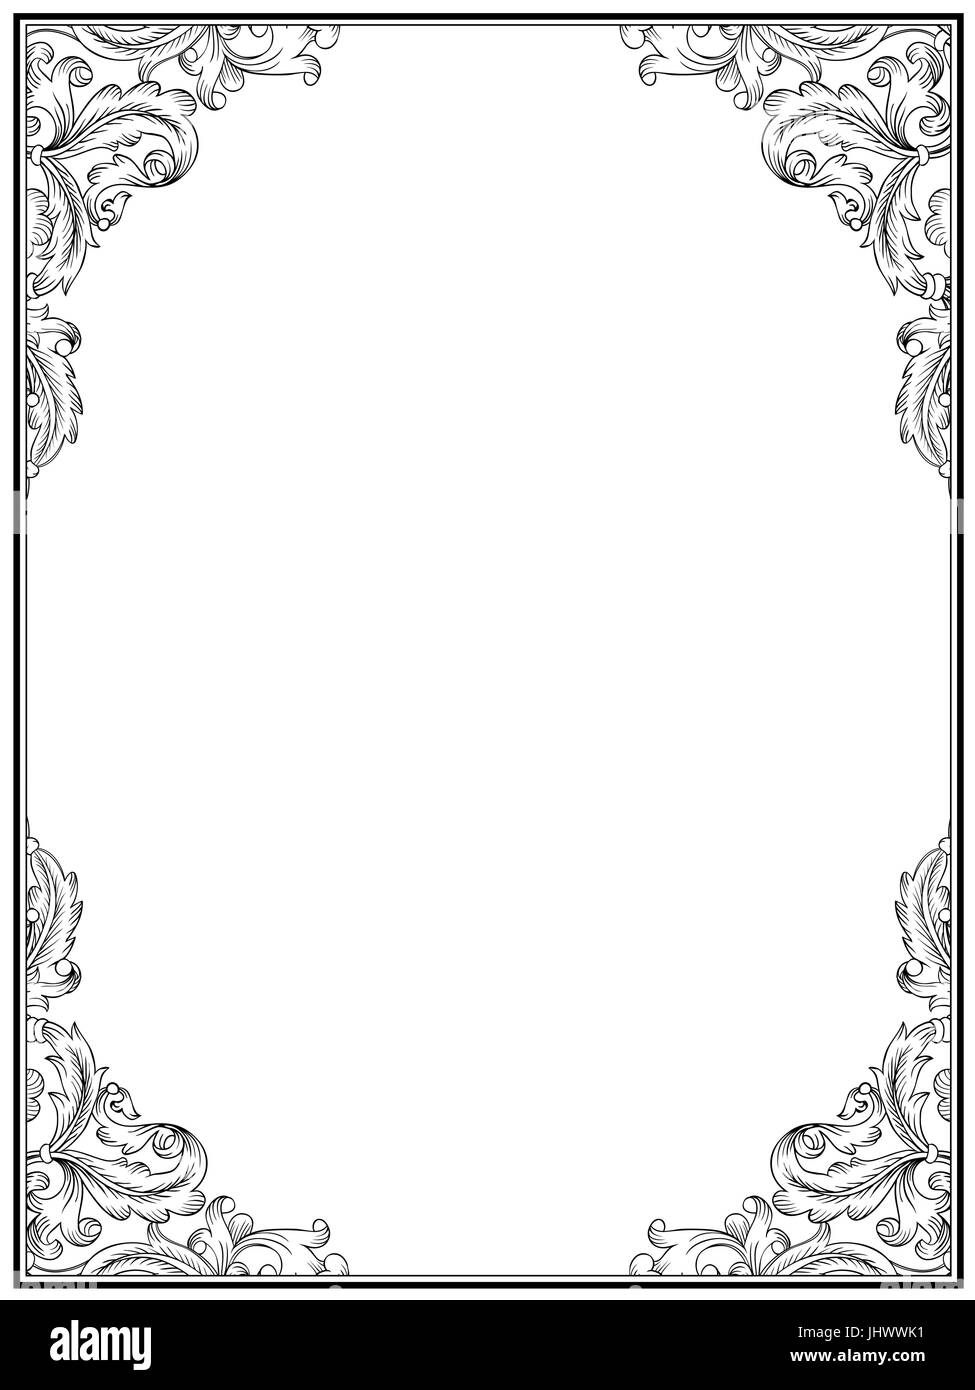 Vintage retro frame for design. Ornamental floral frame template ...